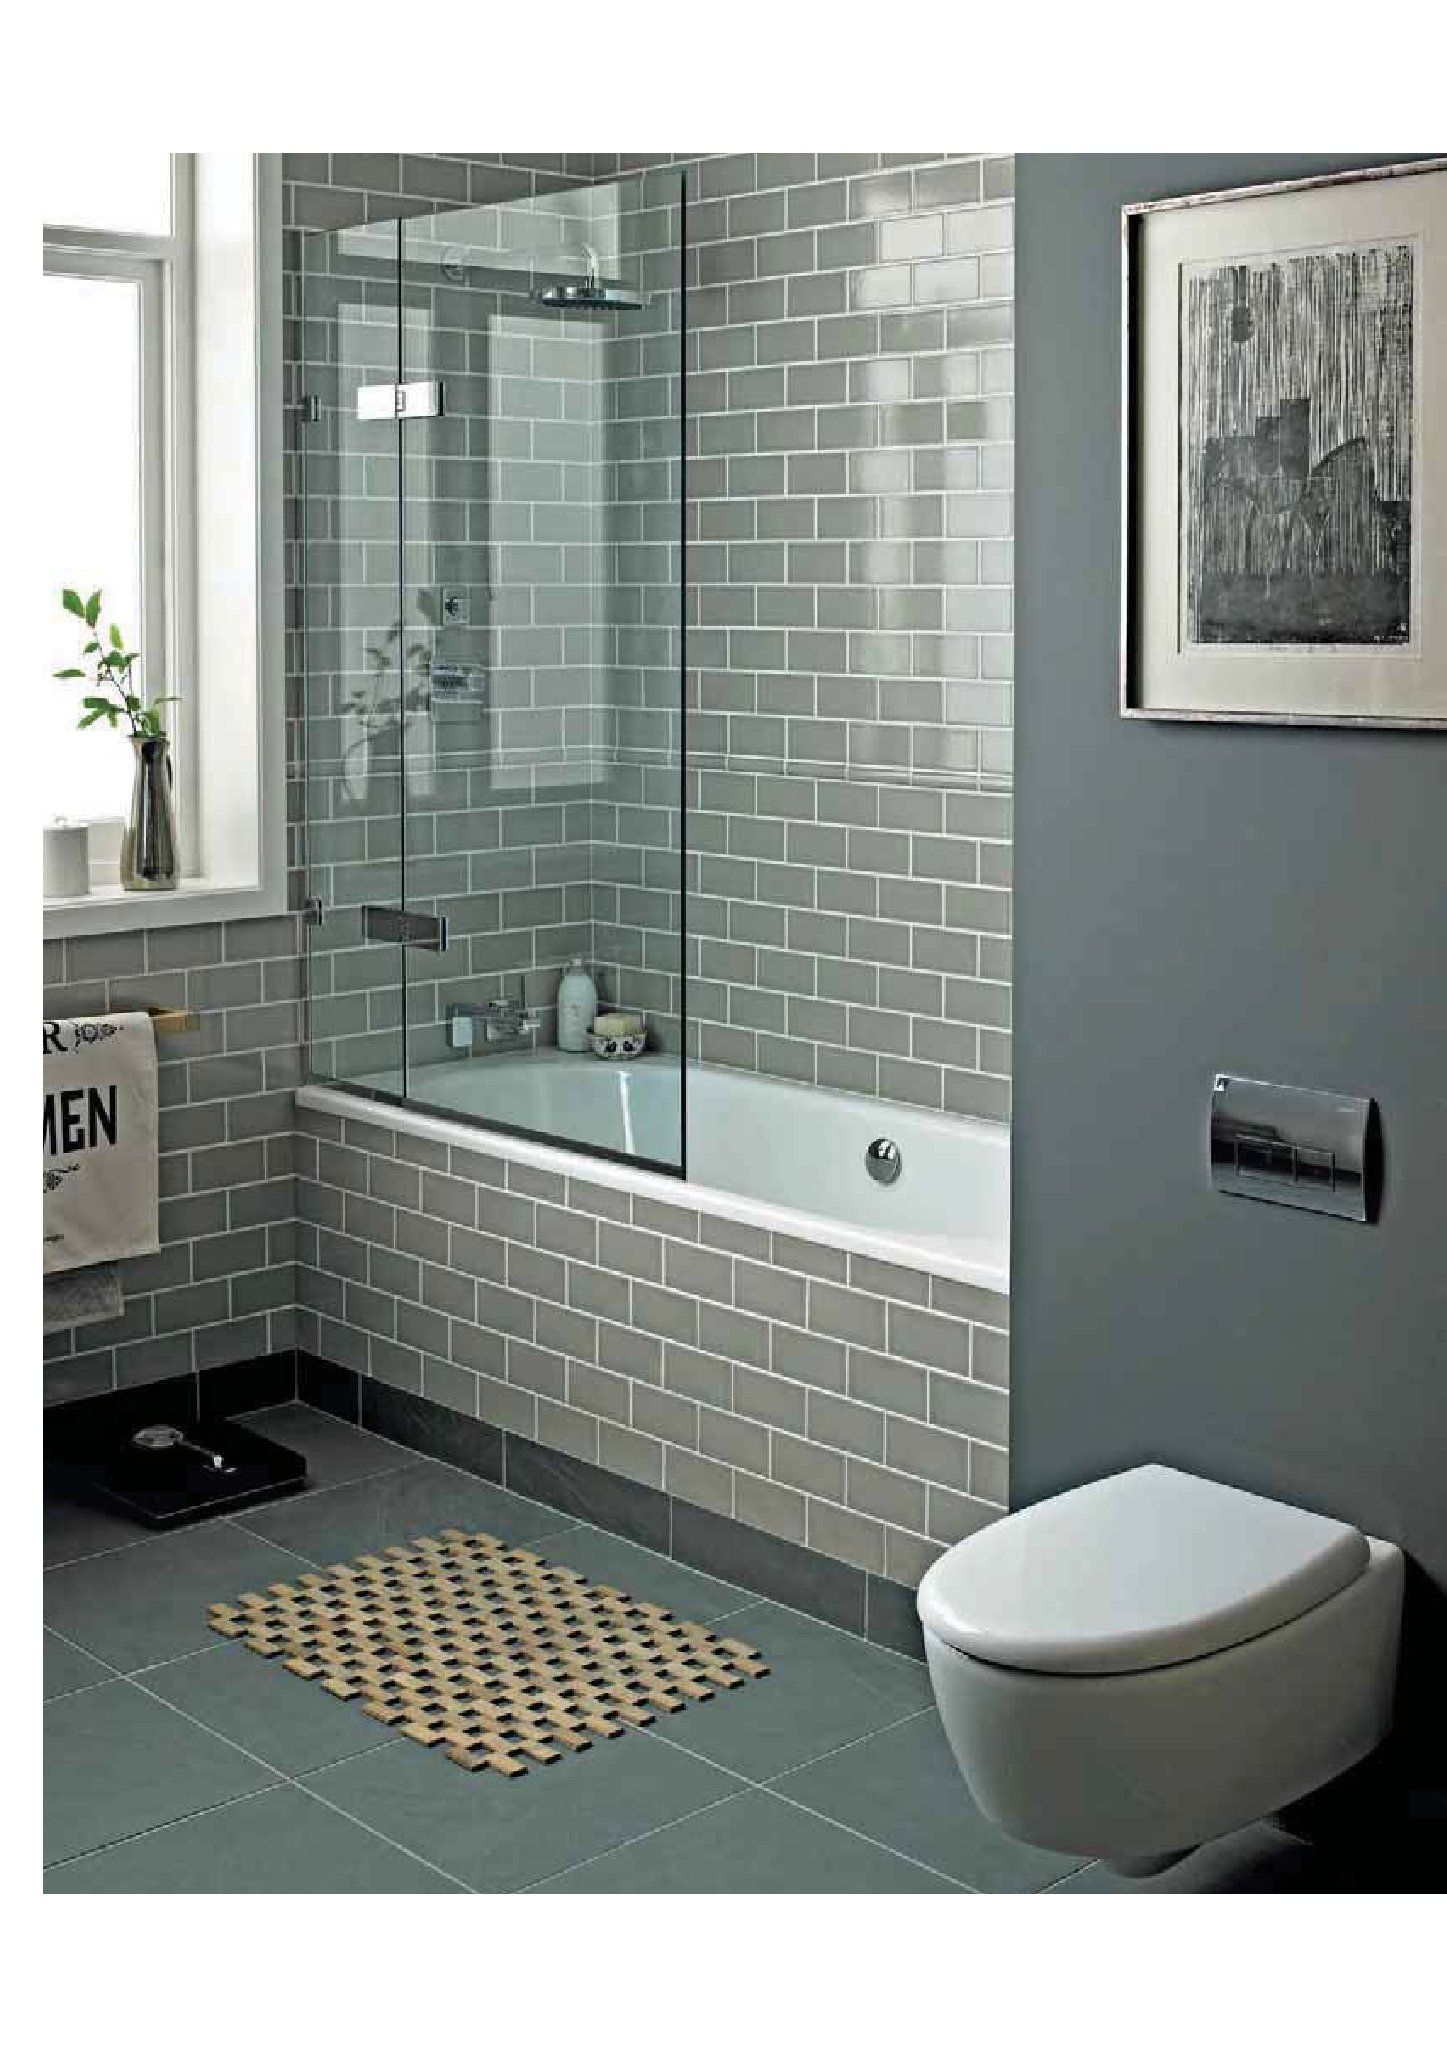 smoke grey glass subway tiles add a spa like feel to this tub smoke grey glass subway tiles add a spa like feel to this tub shower